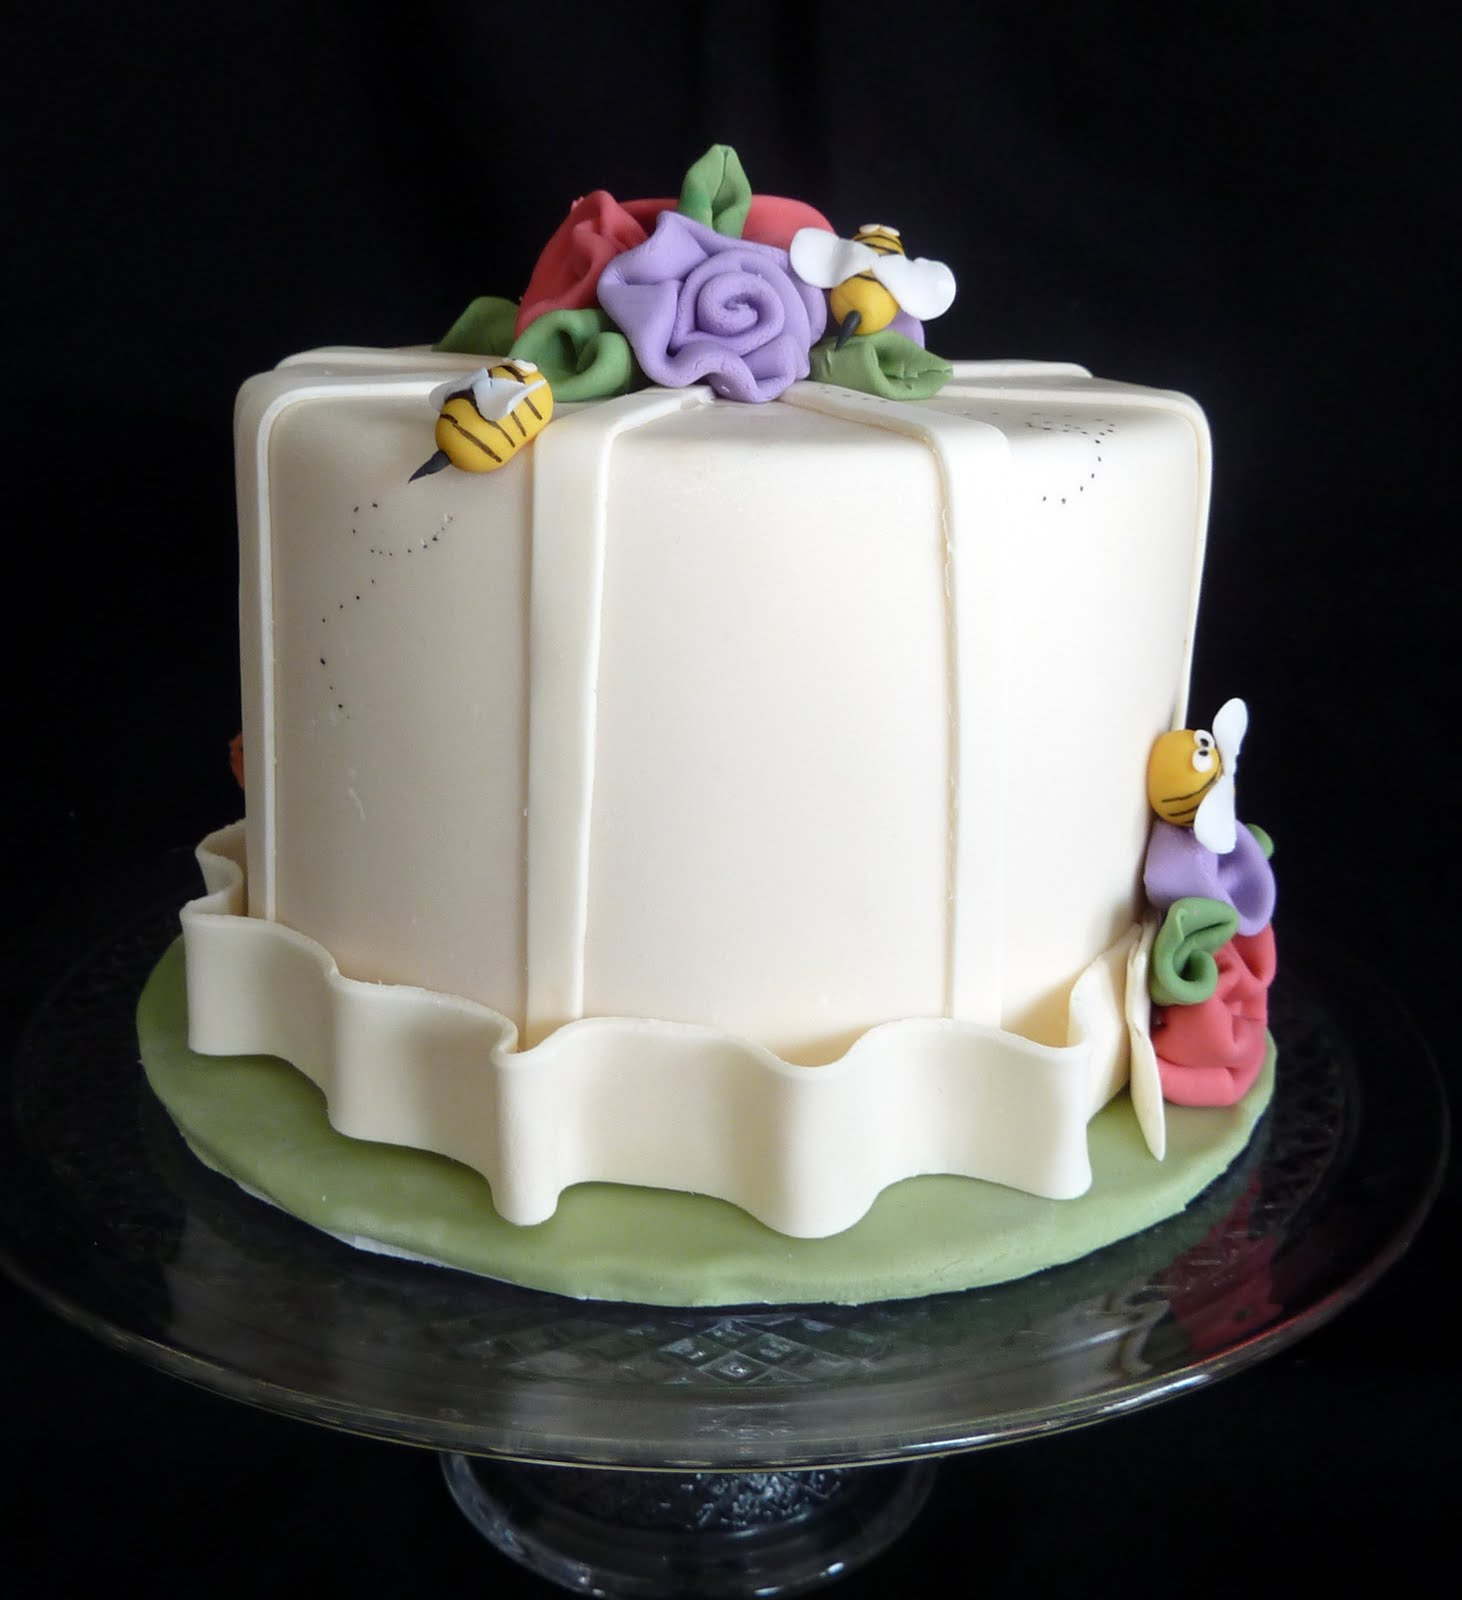 Cake Decorating Classes For Kids : Sweet Mimsy: Kids Cake Decorating Classes